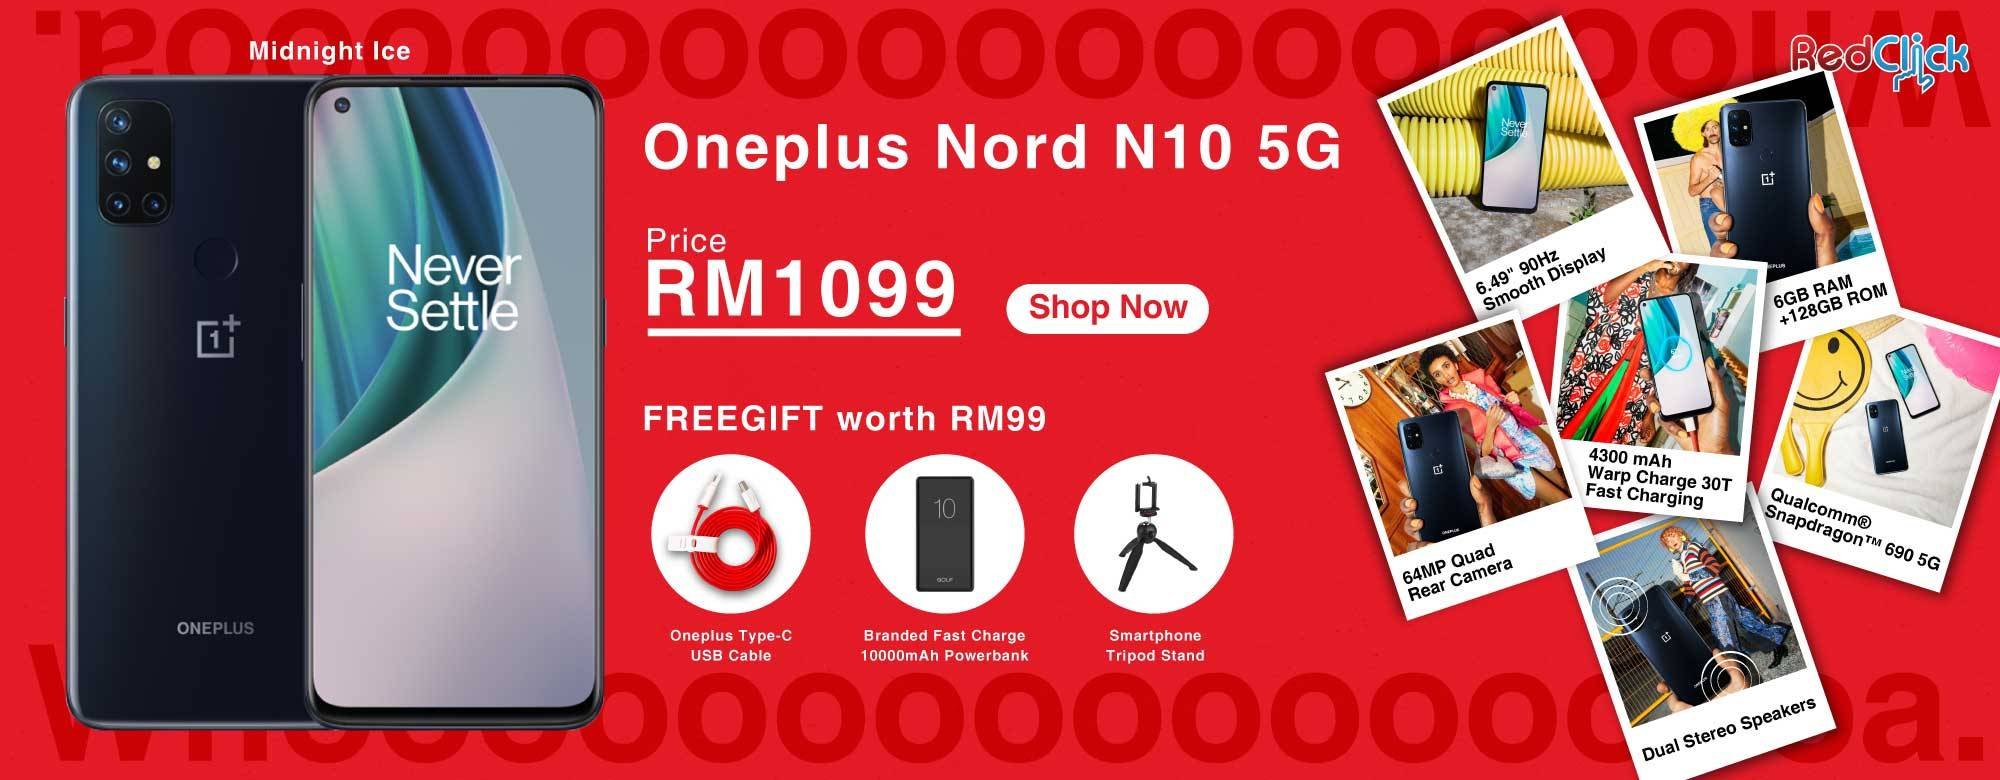 OnePlus Nord N105G